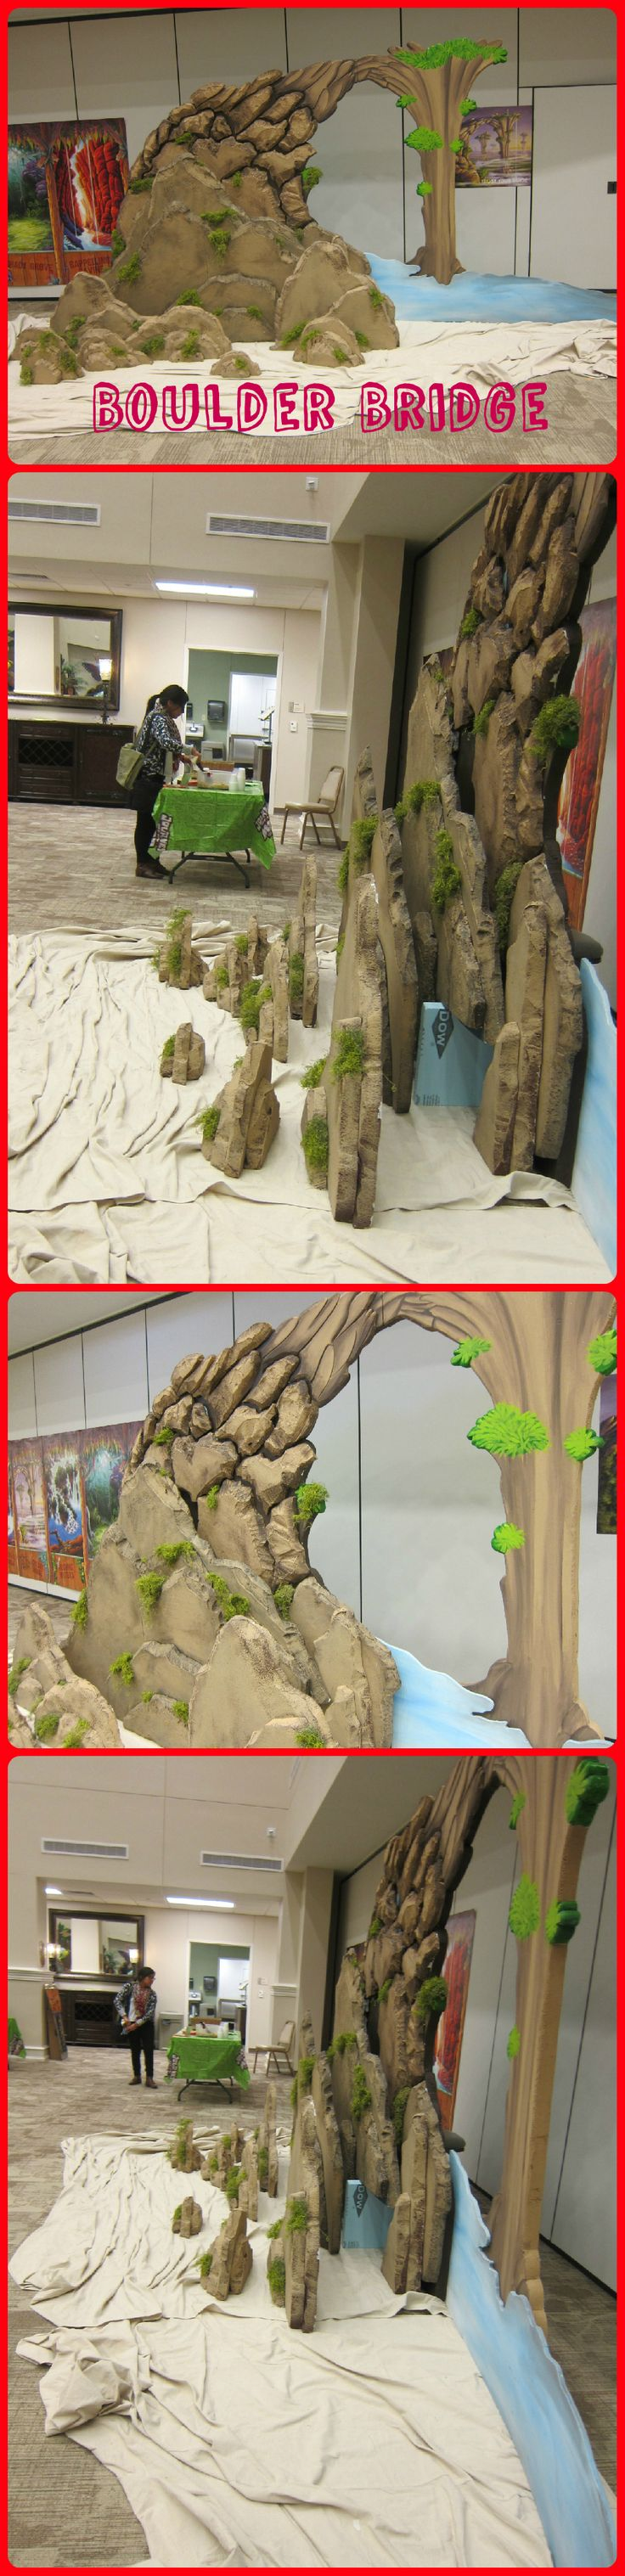 Boulder Bridge backdrop from several angles.  On display at Lifeway's Preview Event in Fort Worth, TX. Image Only Journey off the Map VBS 2015.